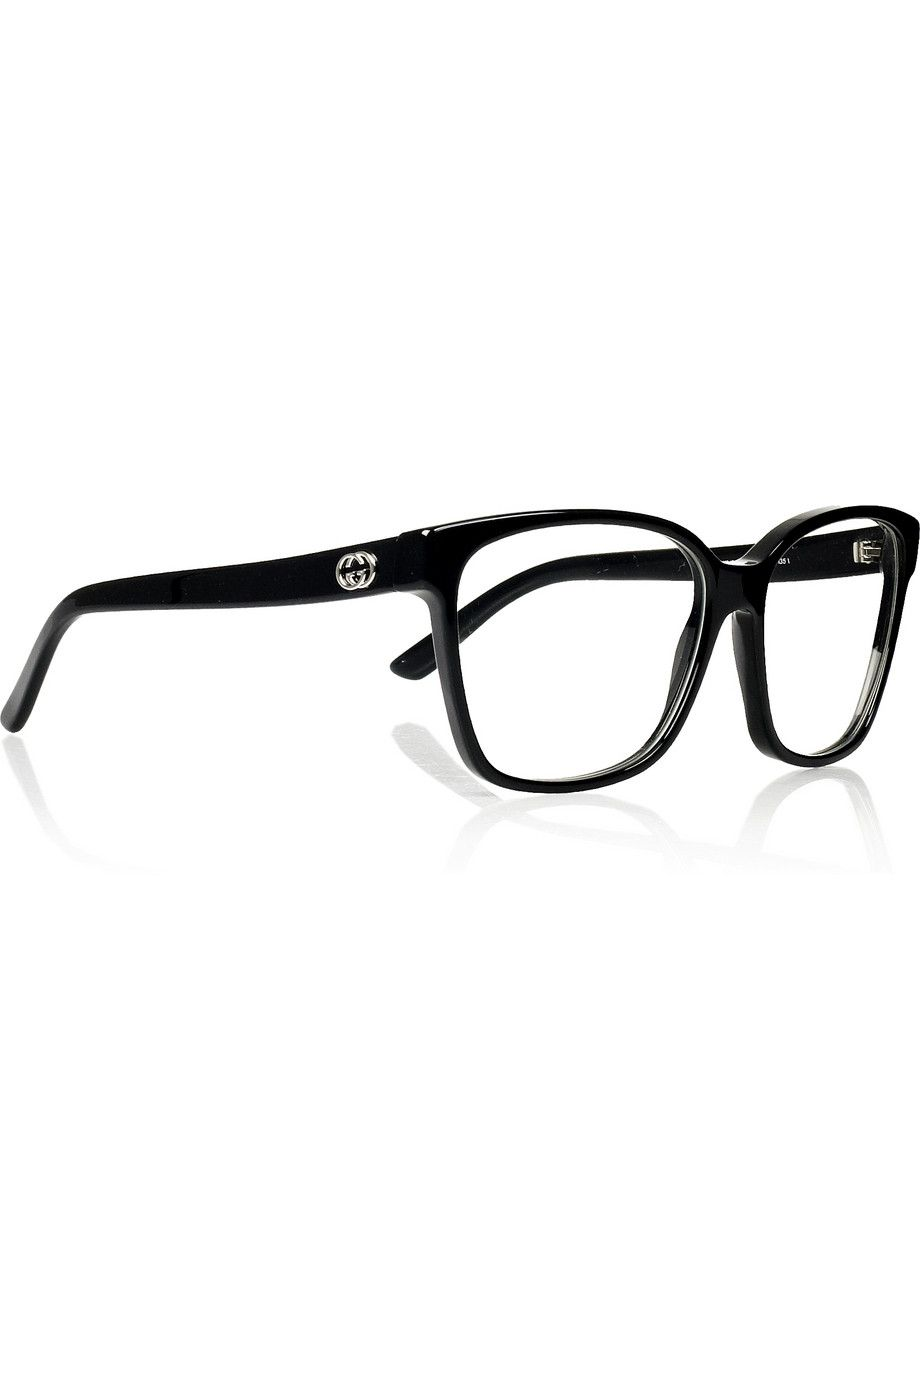 Gucci | Square-frame acetate optical glasses I wish I needed glasses ...